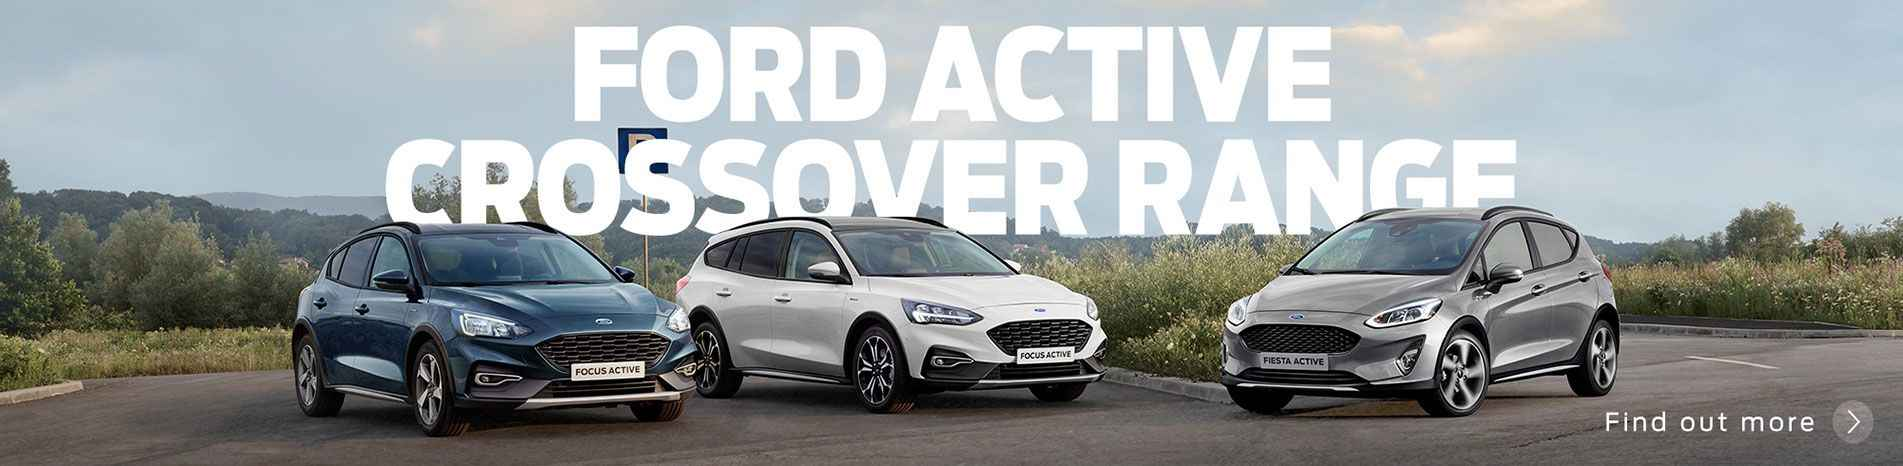 Ford Active Crossover Range